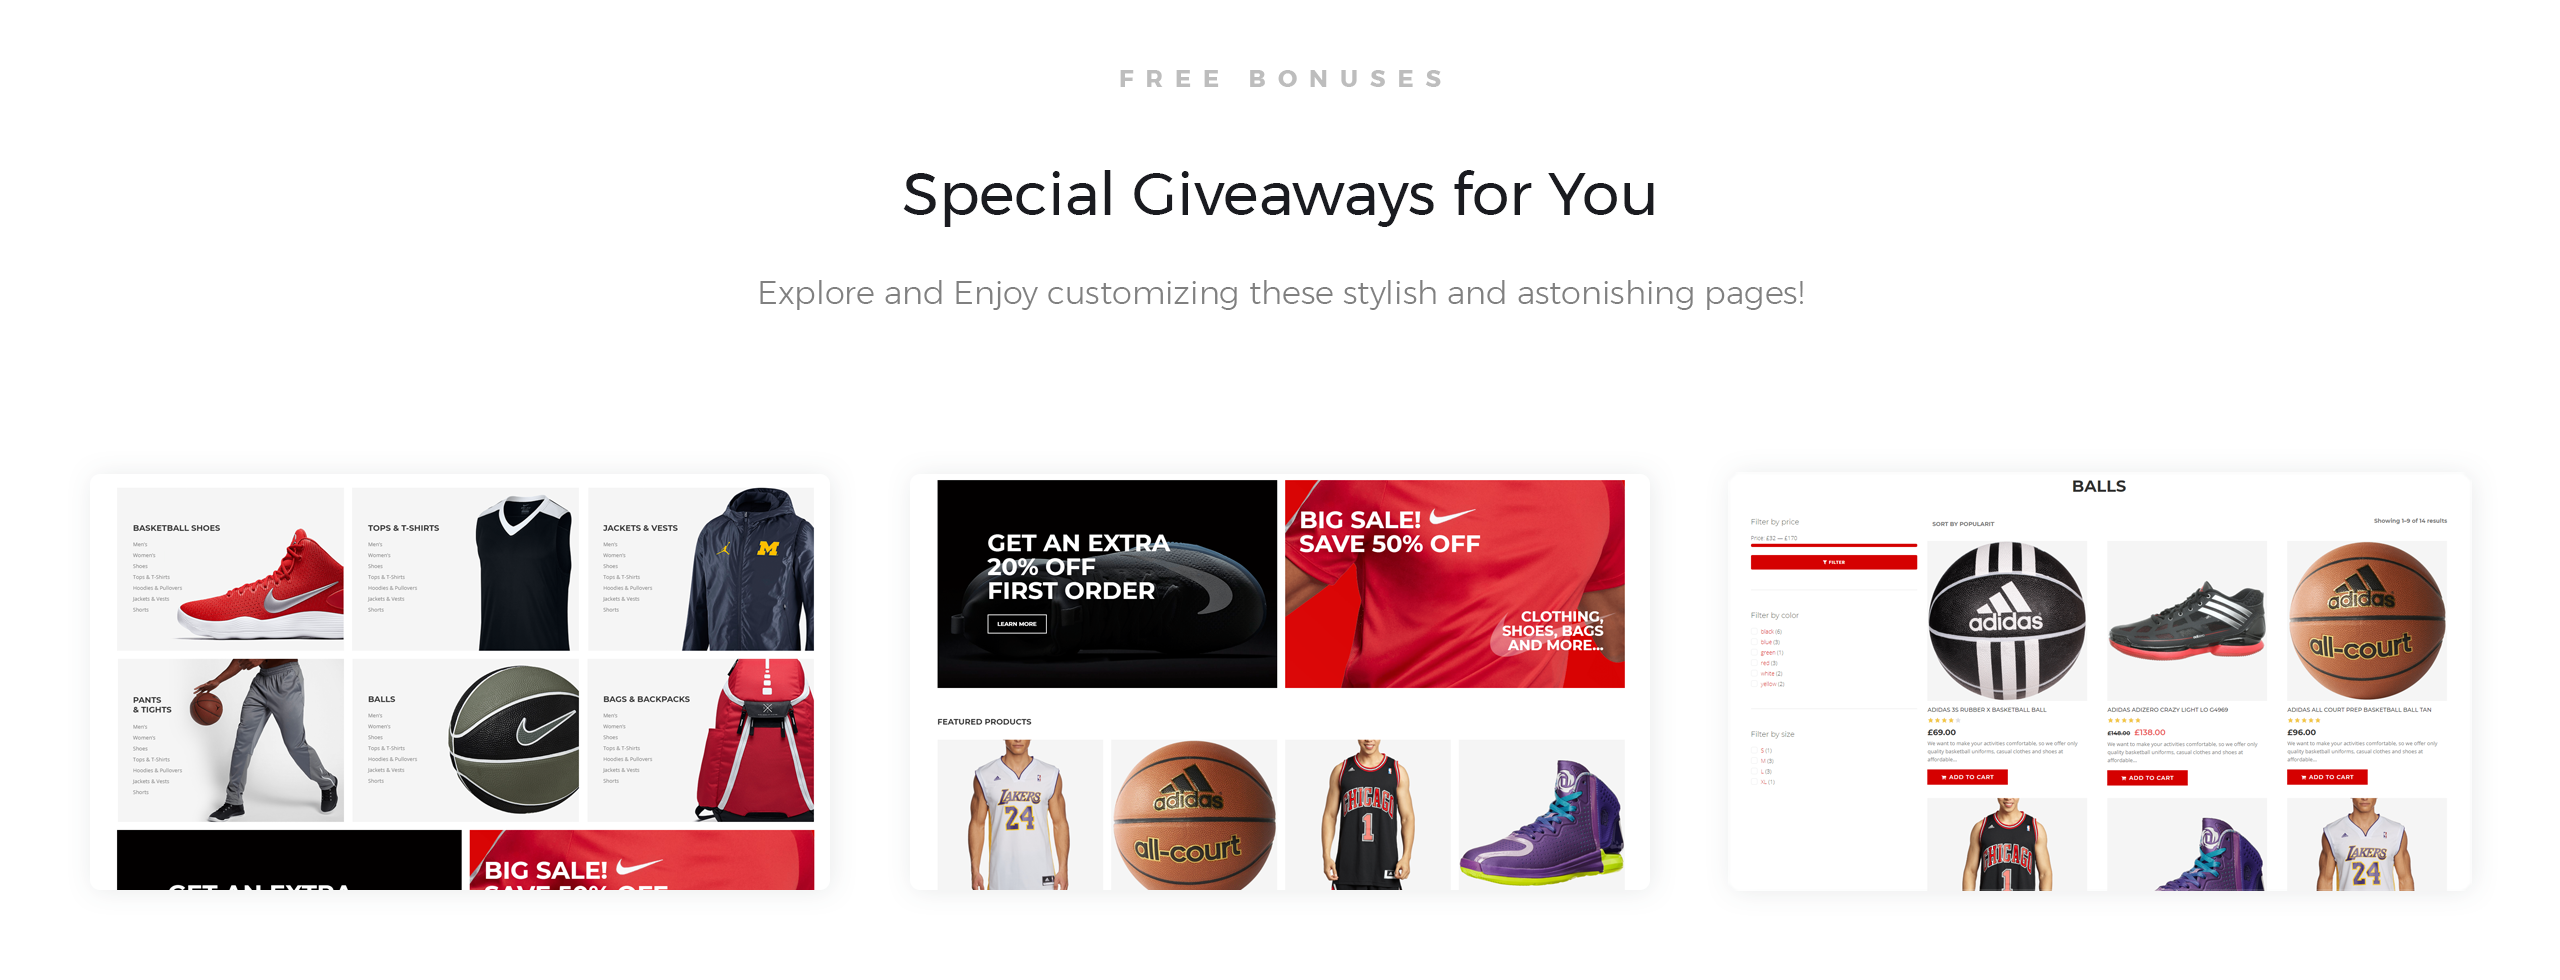 Website Design Template 74509 - shop store balls design pants shipping newsletter goods